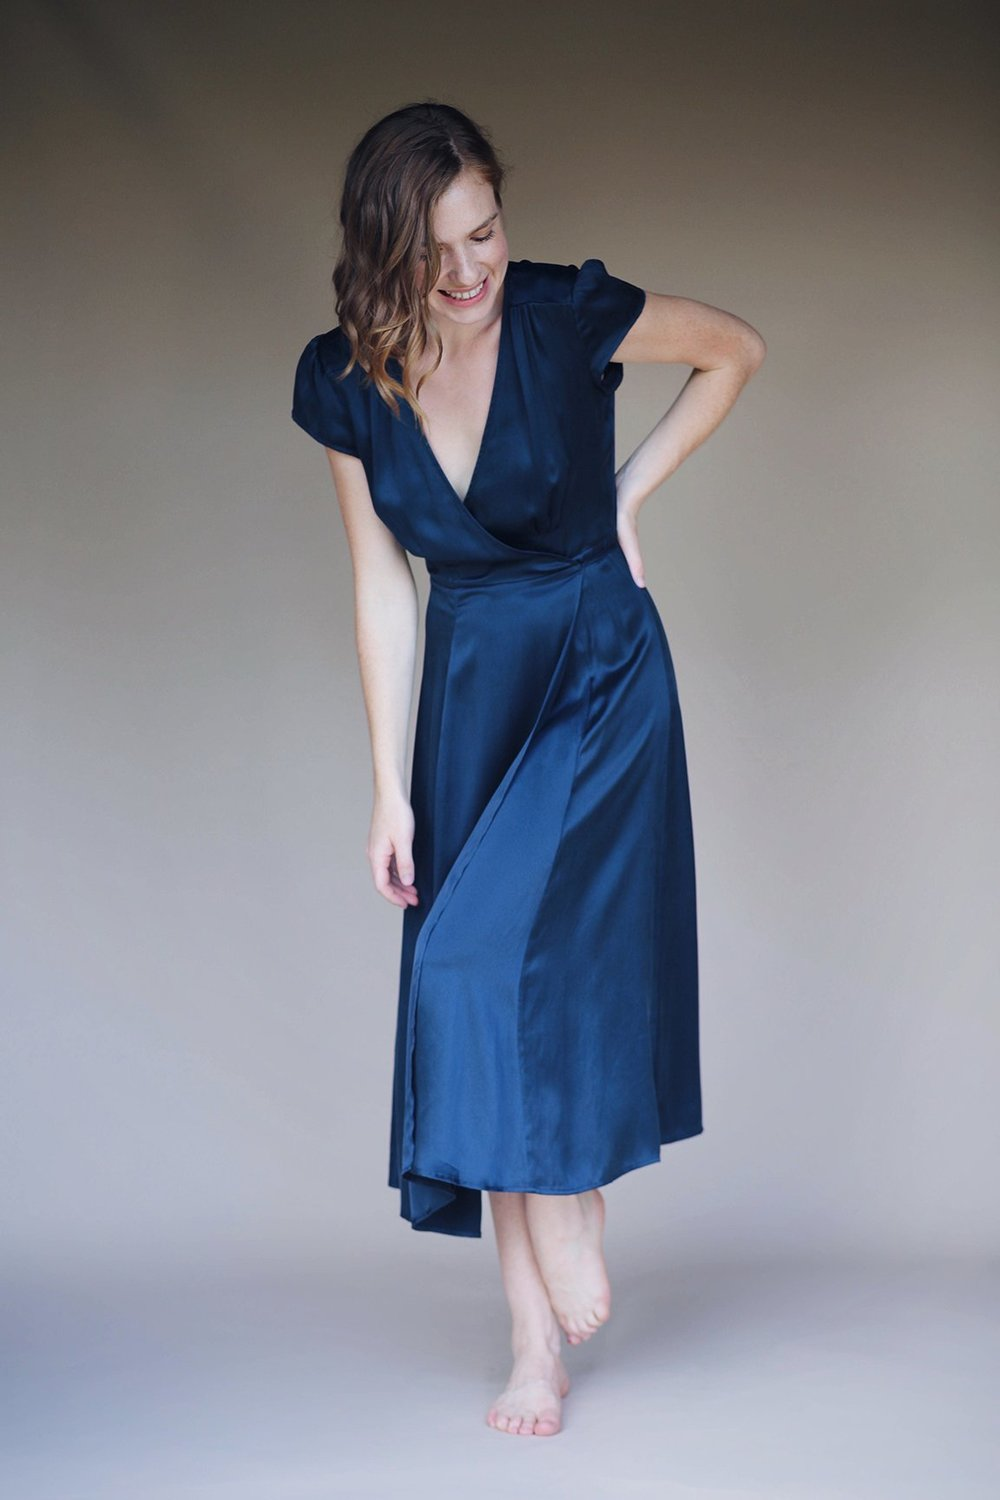 Silk Wrap Dress in Lapis - A classic wrap dress that is timeless, and able to be worn dressed up or dressed down. This is a wrap, midi length dress with a full fabric skirt.100% Silk • Midi length • Bra friendly • Wrap waistband • Full skirt • Short sleeve